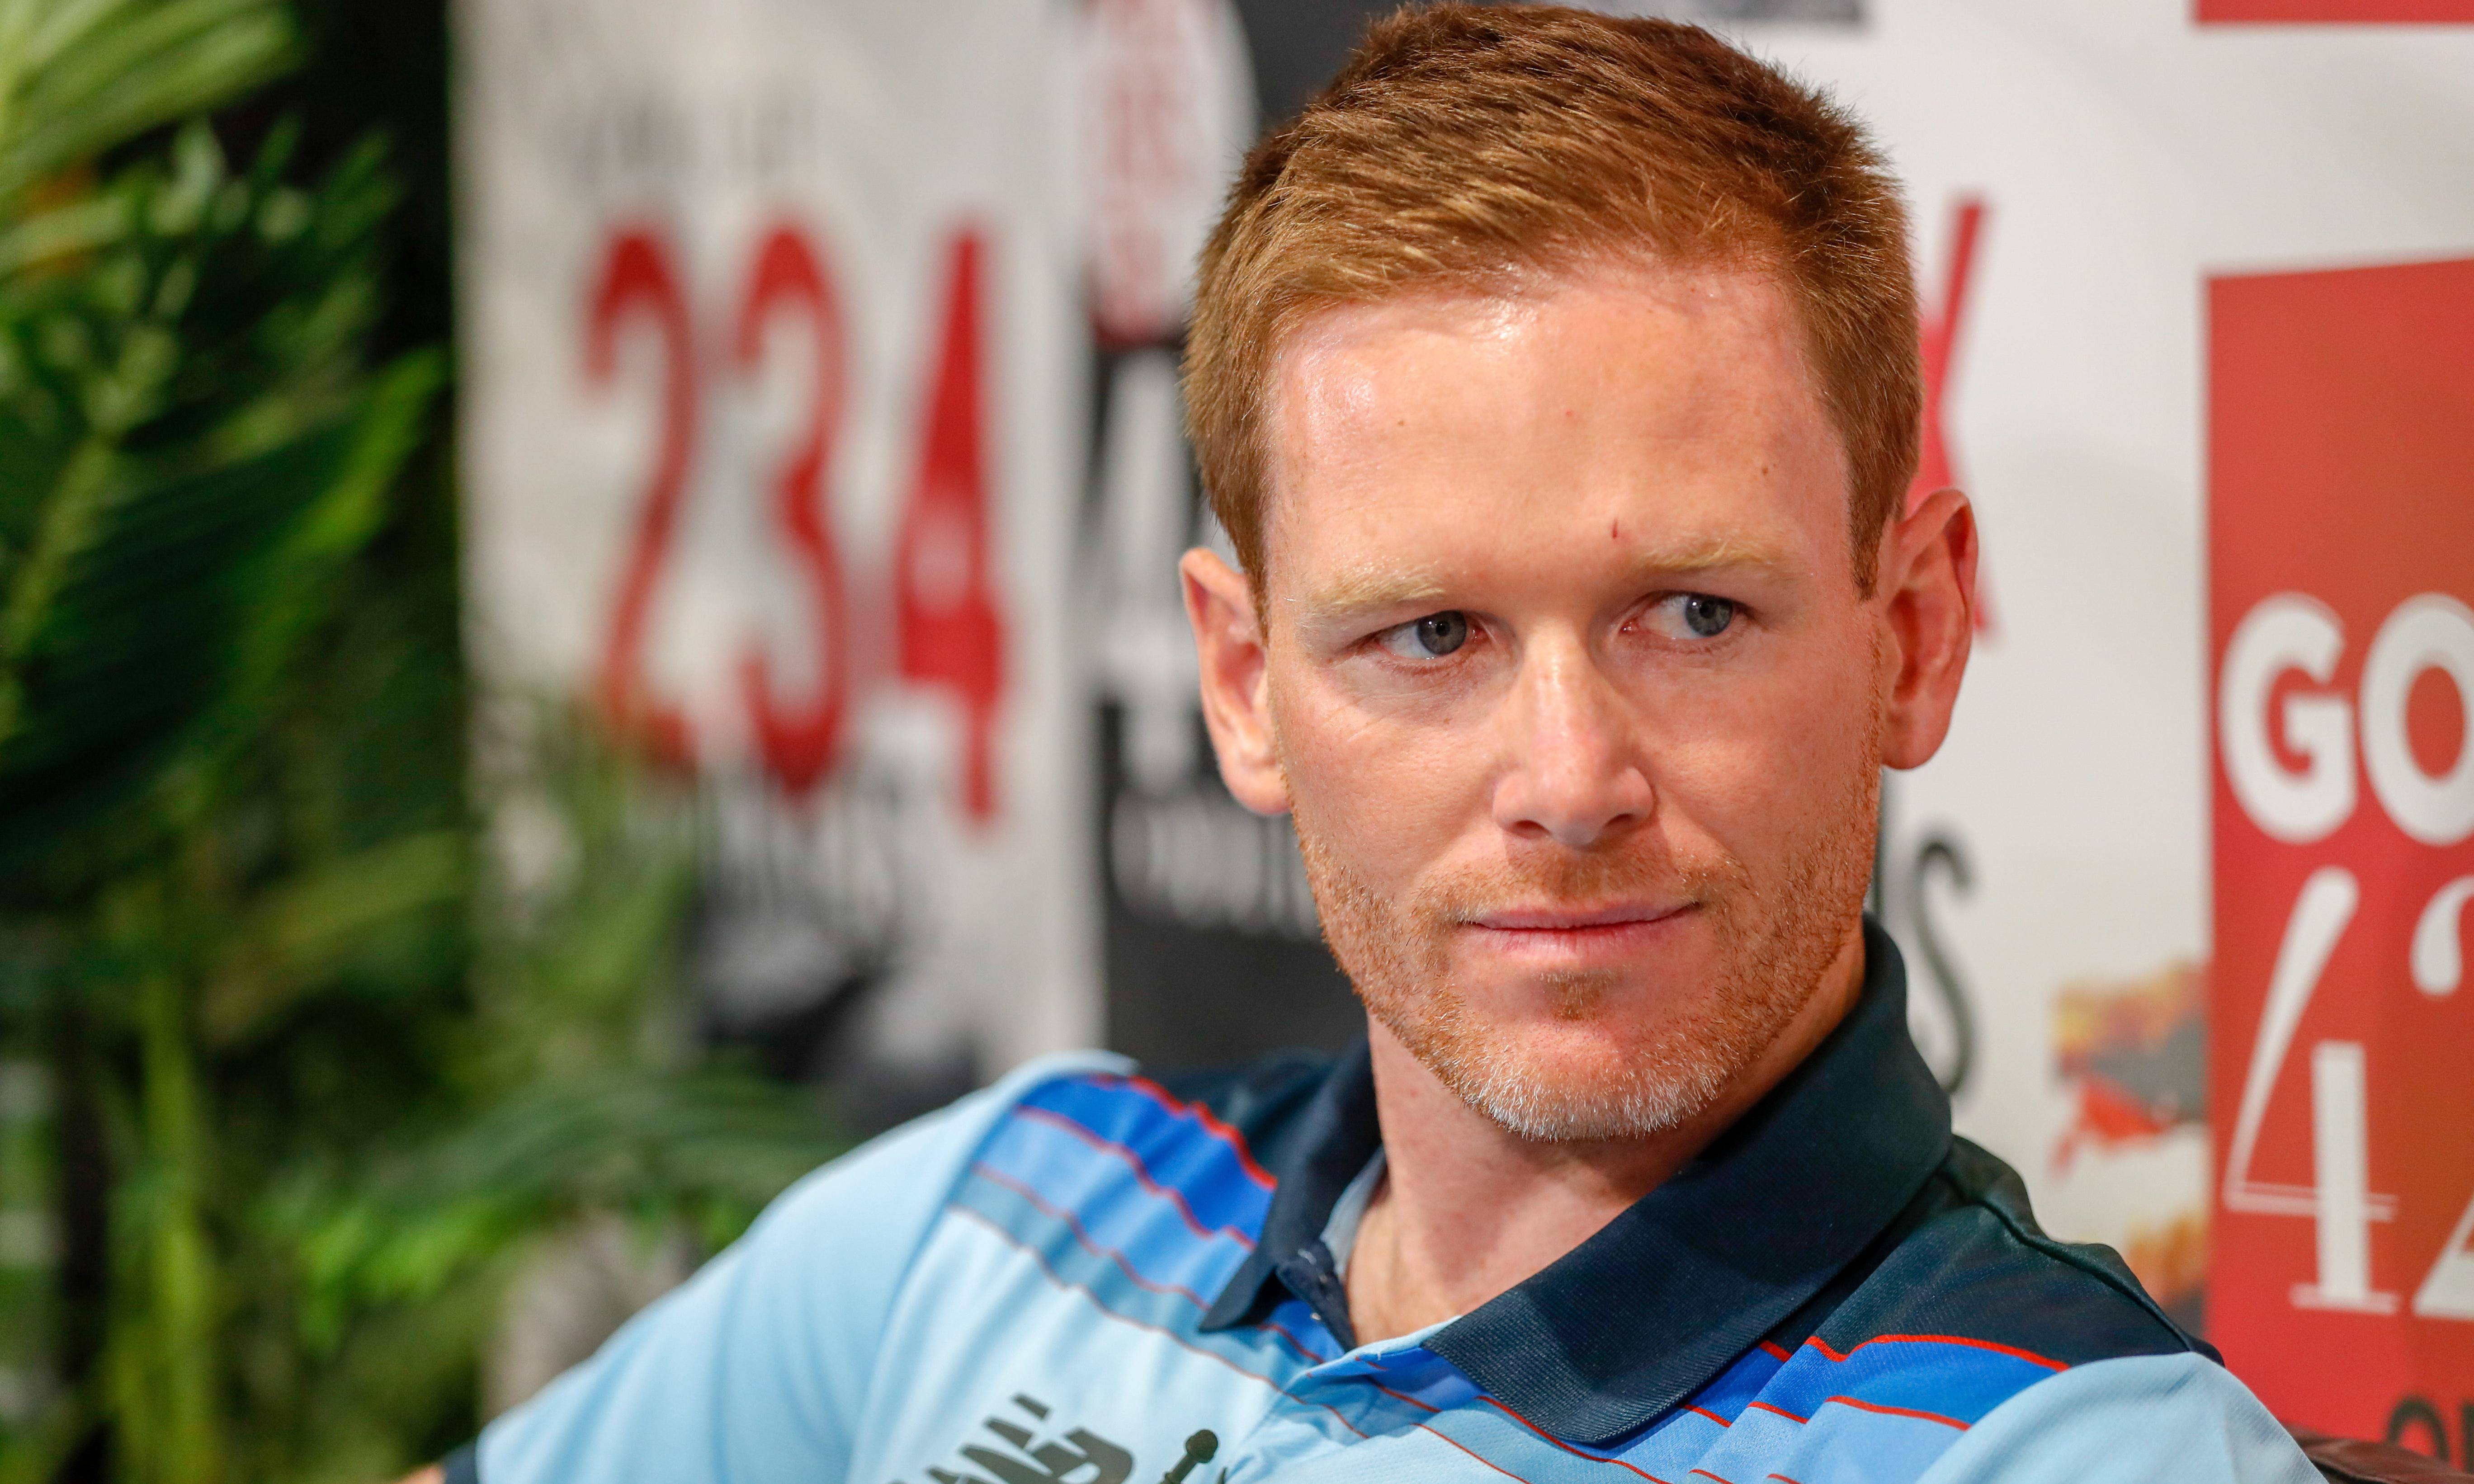 Eoin Morgan says England are 'as ready as we can be' for World Cup campaign